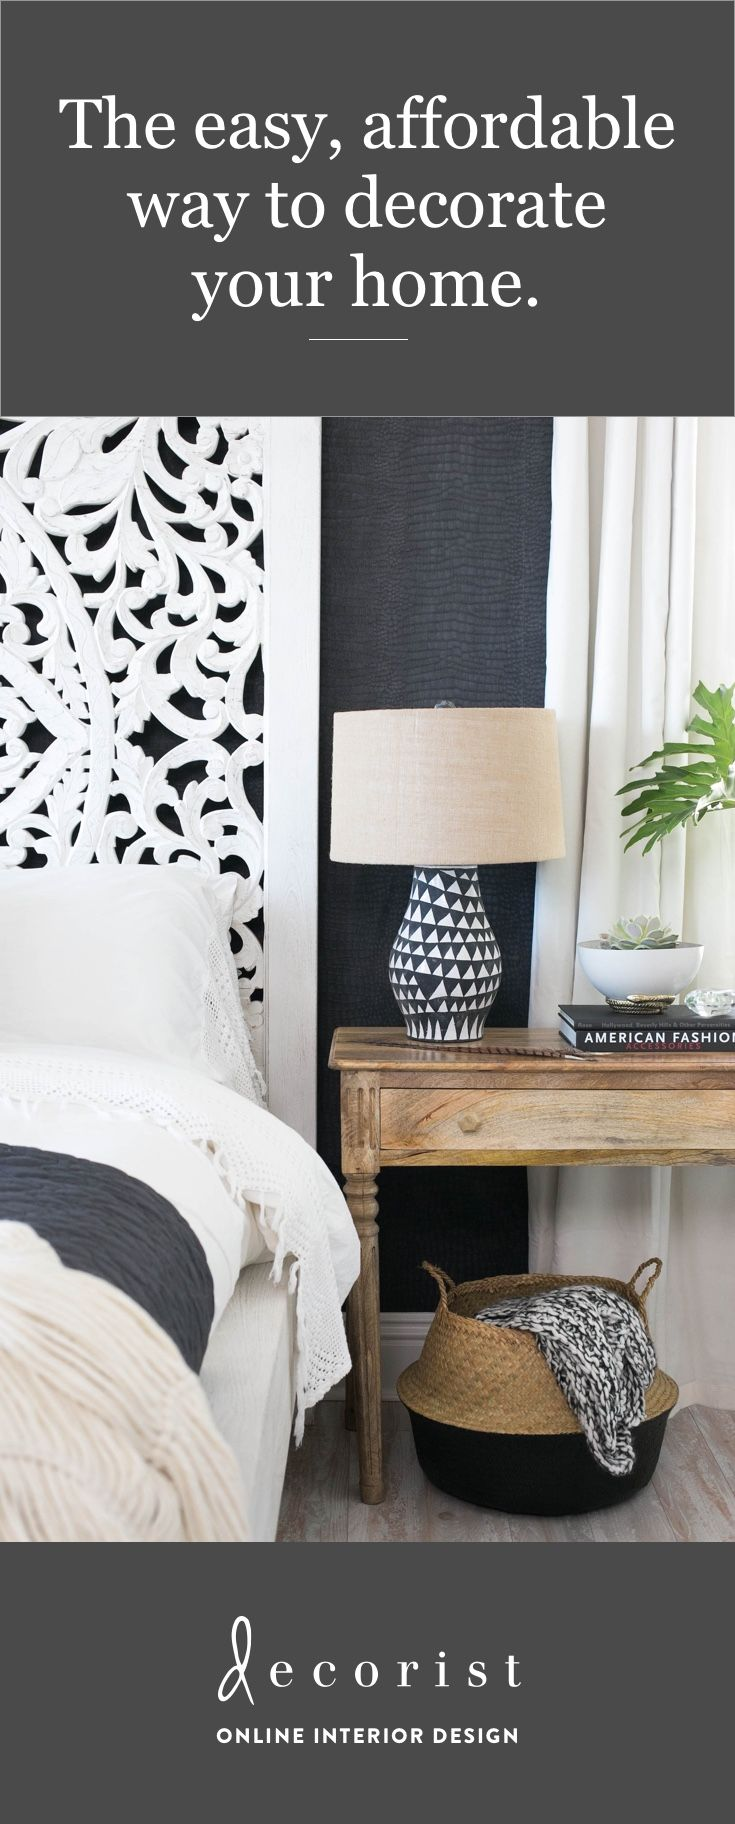 Decorist provides online interior design services that are easy fun and affordable get the home or office makeover you  ve always wanted also top designers rh pinterest